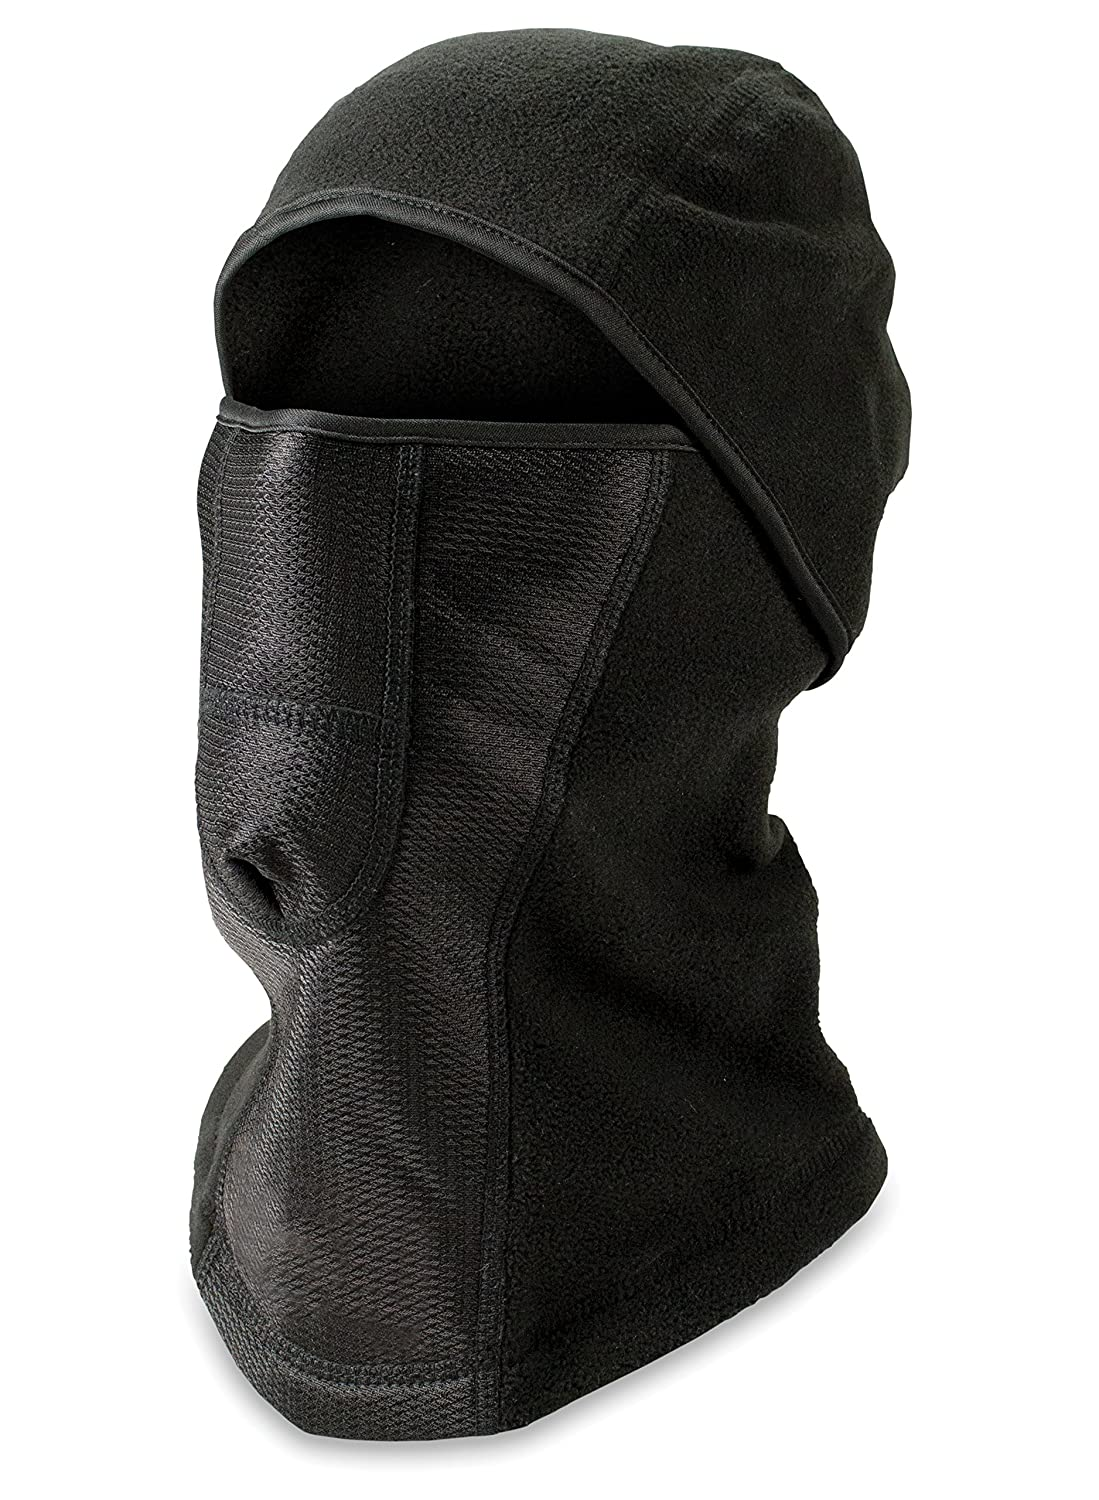 Pyramex BL111 Balaclava Face Mask with Mesh Breathing Panels - Great for Freezer and Warehouse Workwear, Construction, Skiing, Snowboarding, ATVing, and Hunting